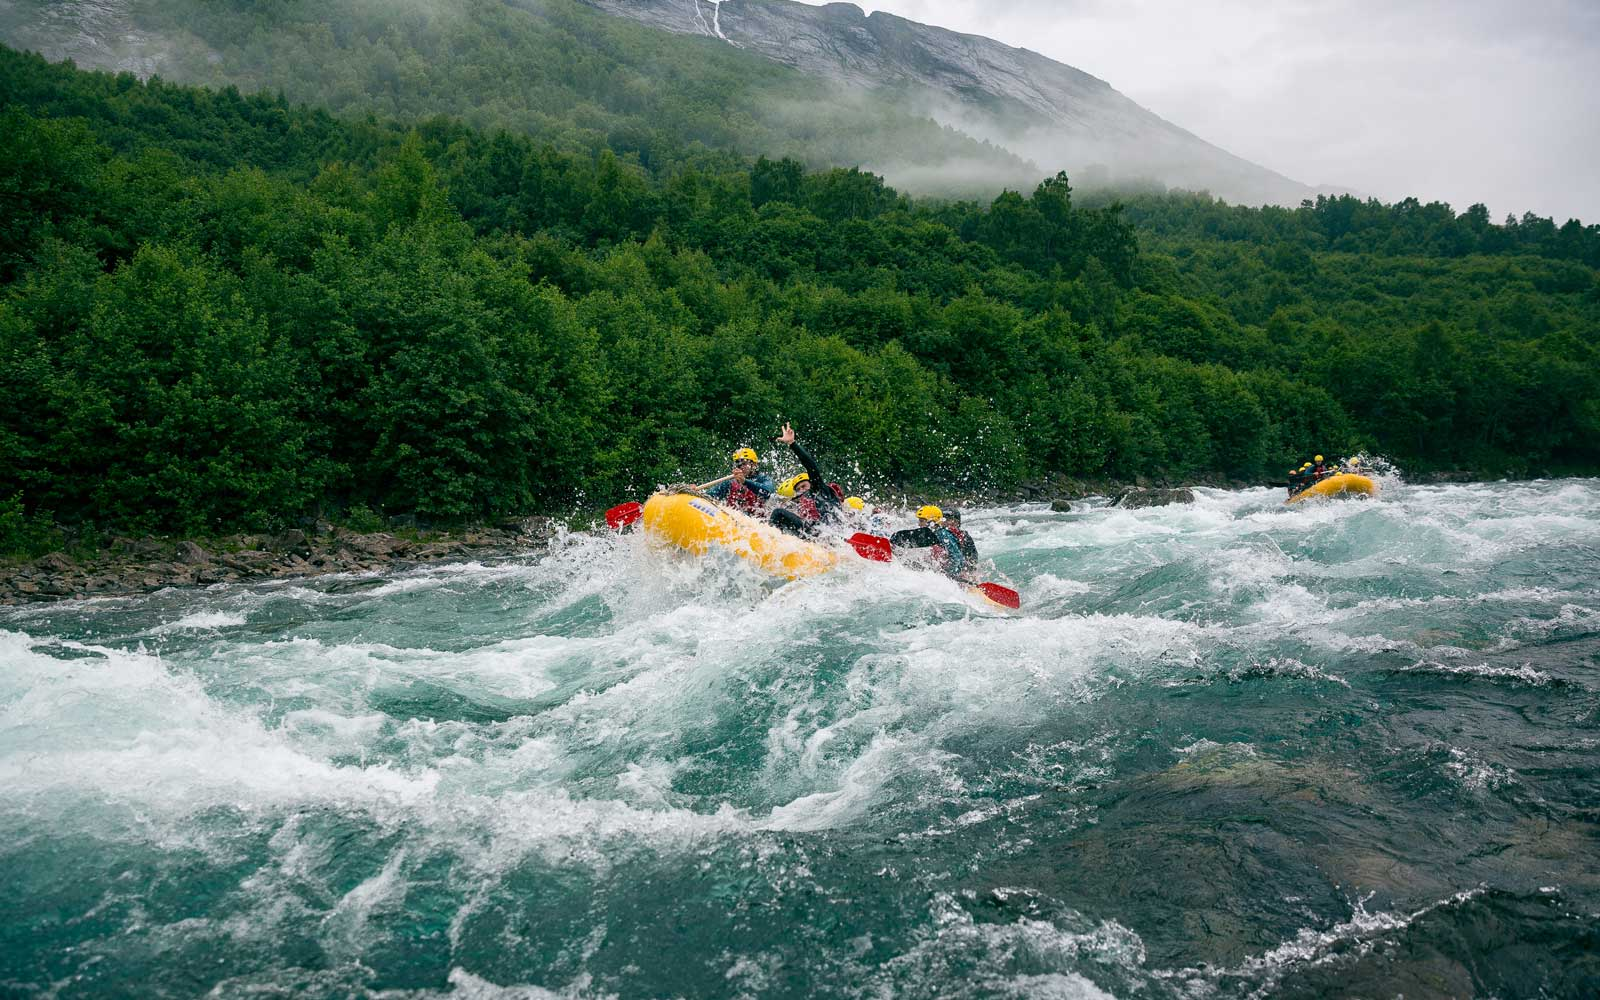 Water Adventure Rafting in Valldal Norway